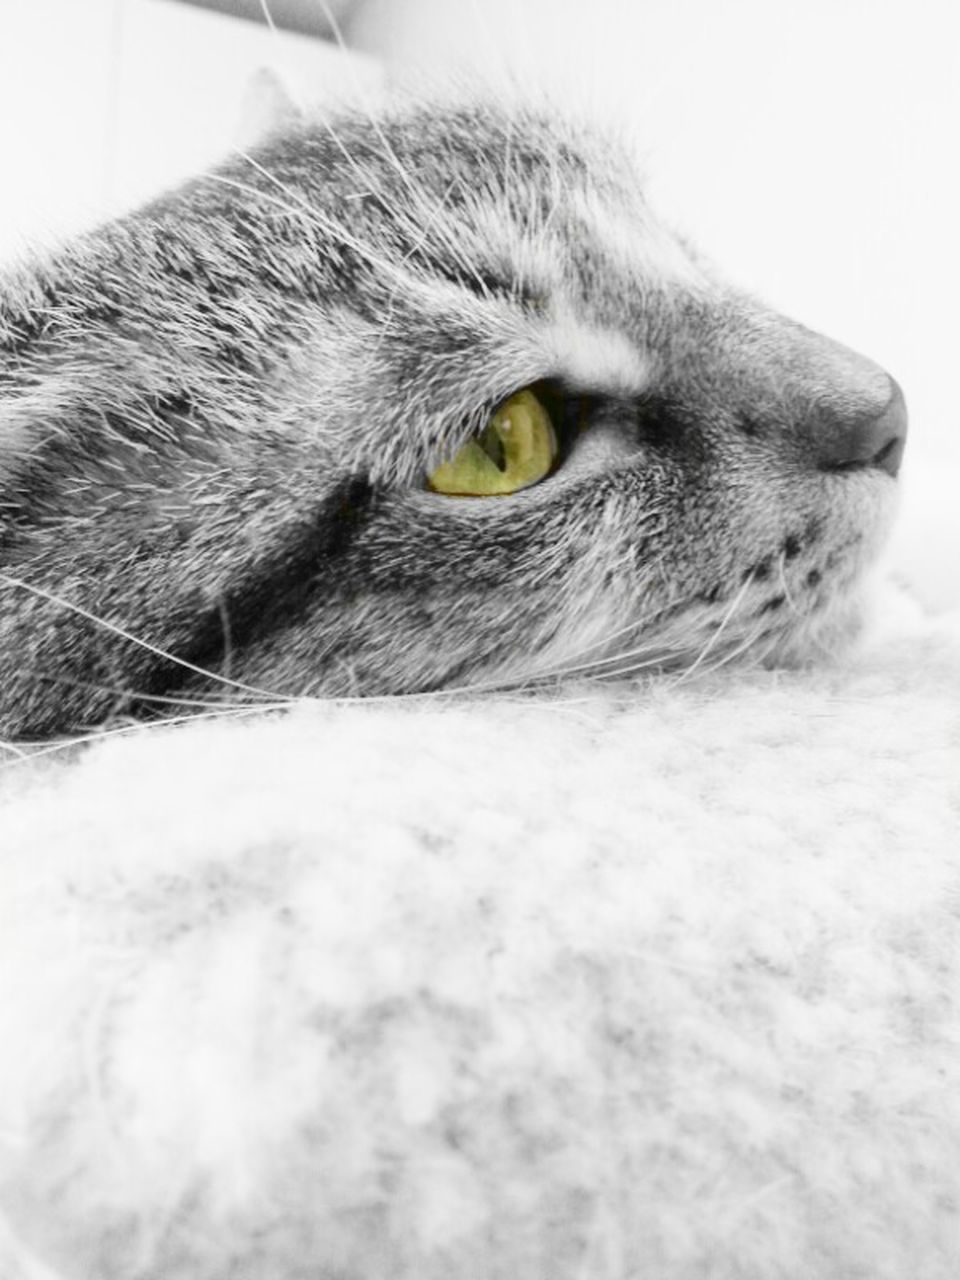 domestic cat, one animal, pets, domestic animals, animal themes, feline, mammal, cat, whisker, portrait, no people, indoors, close-up, looking at camera, day